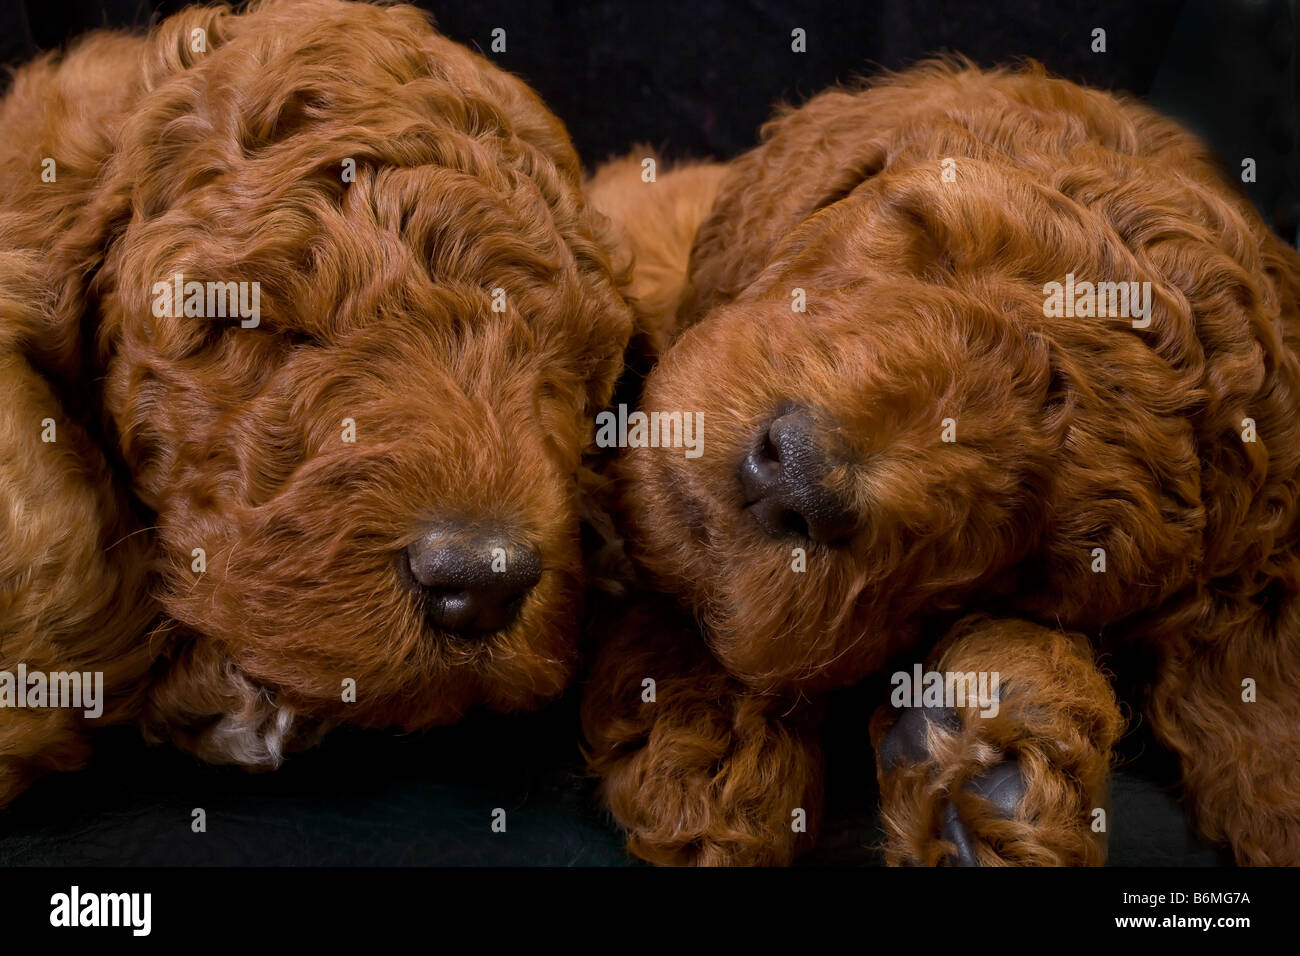 Red Standard Poodle Puppies 5 Weeks Old Stock Photo 21350094 Alamy